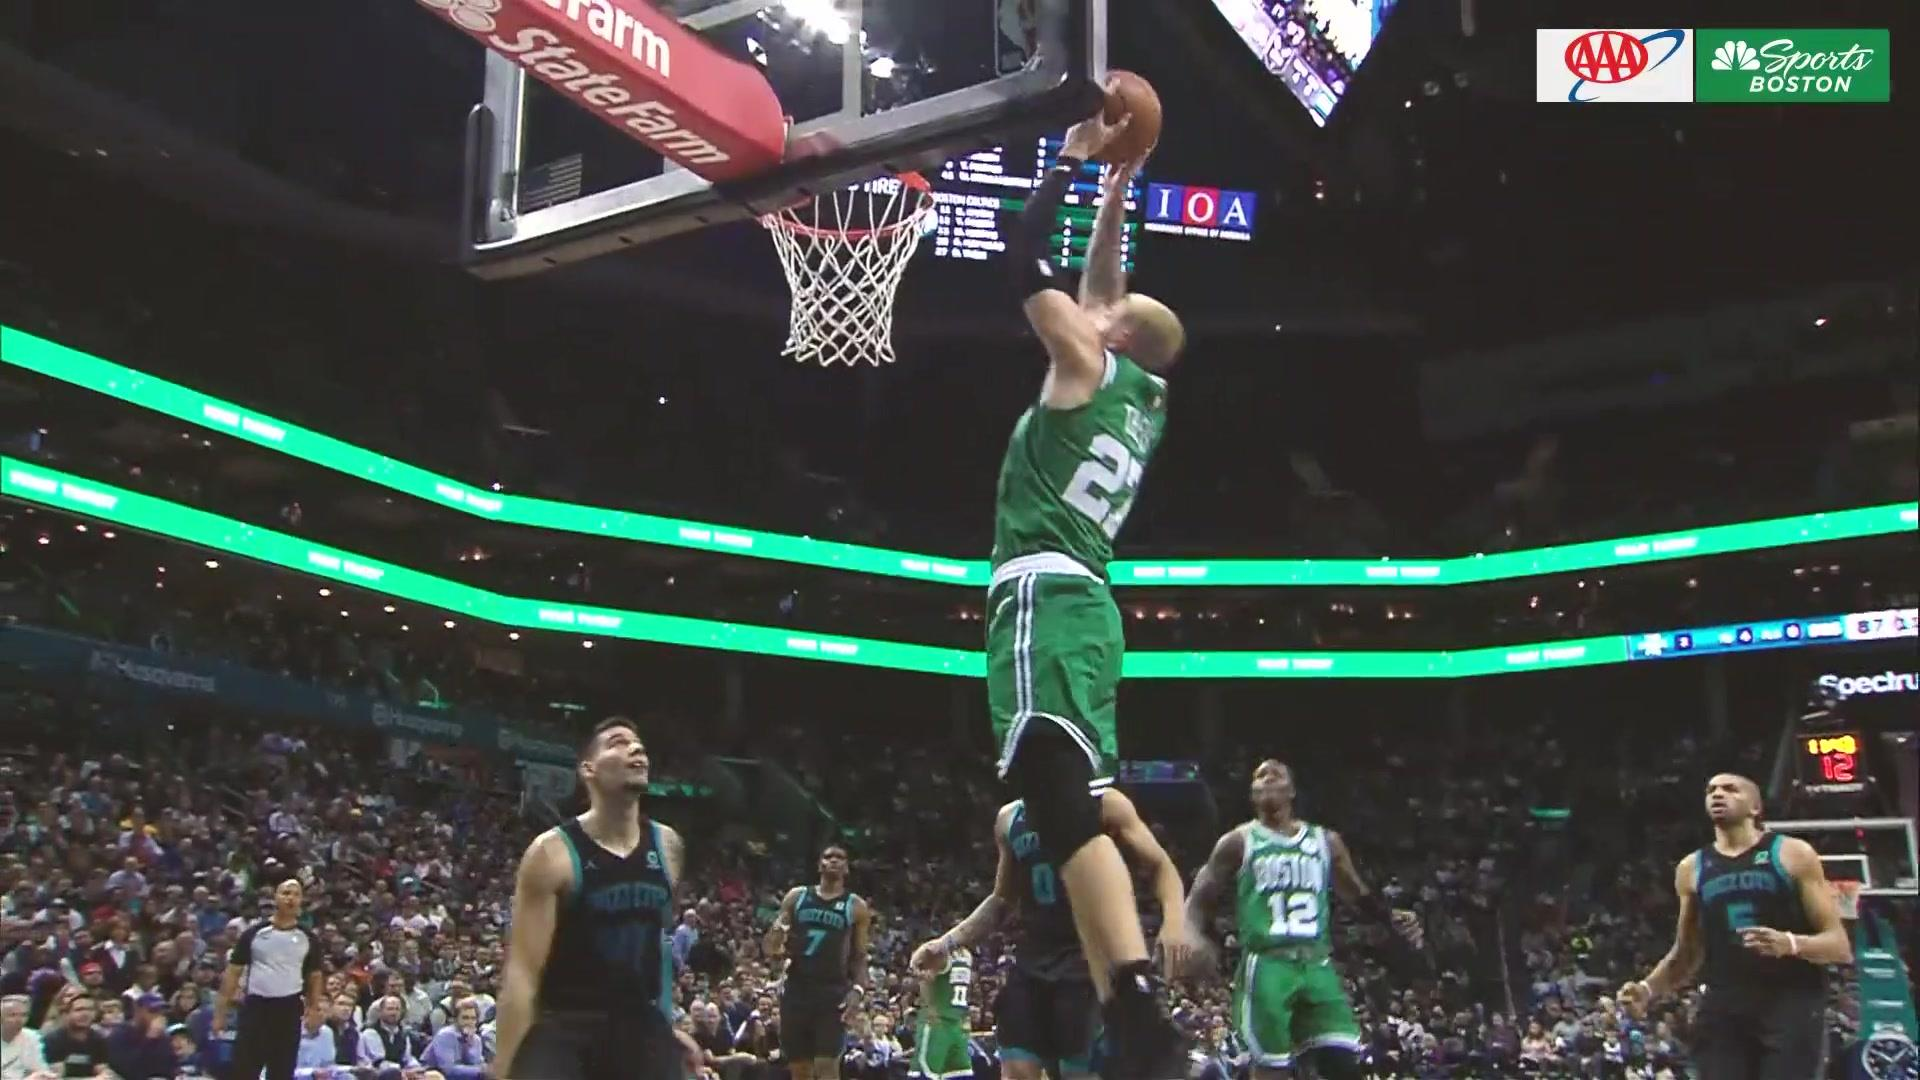 Kyrie Irving battles for rebound, leads to alley-oop jam from Daniel Theis